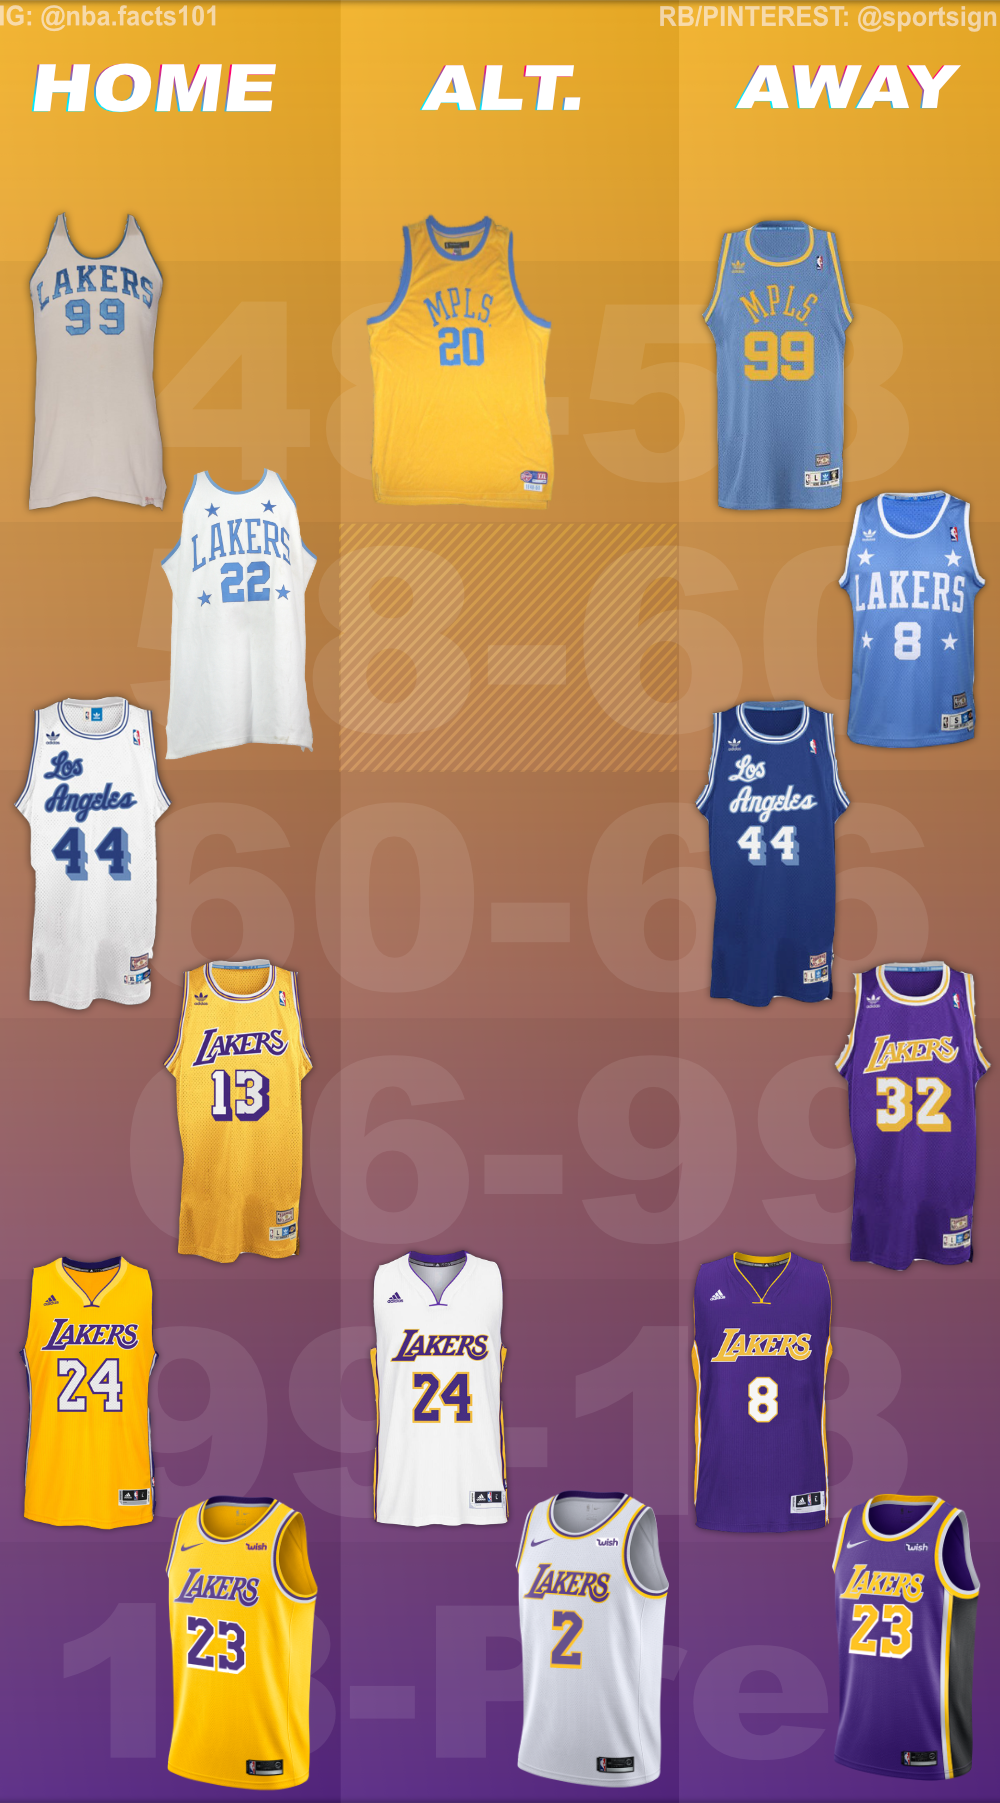 Los Angeles Lakers Jersey History Nba Basketball Teams Nba Lakers